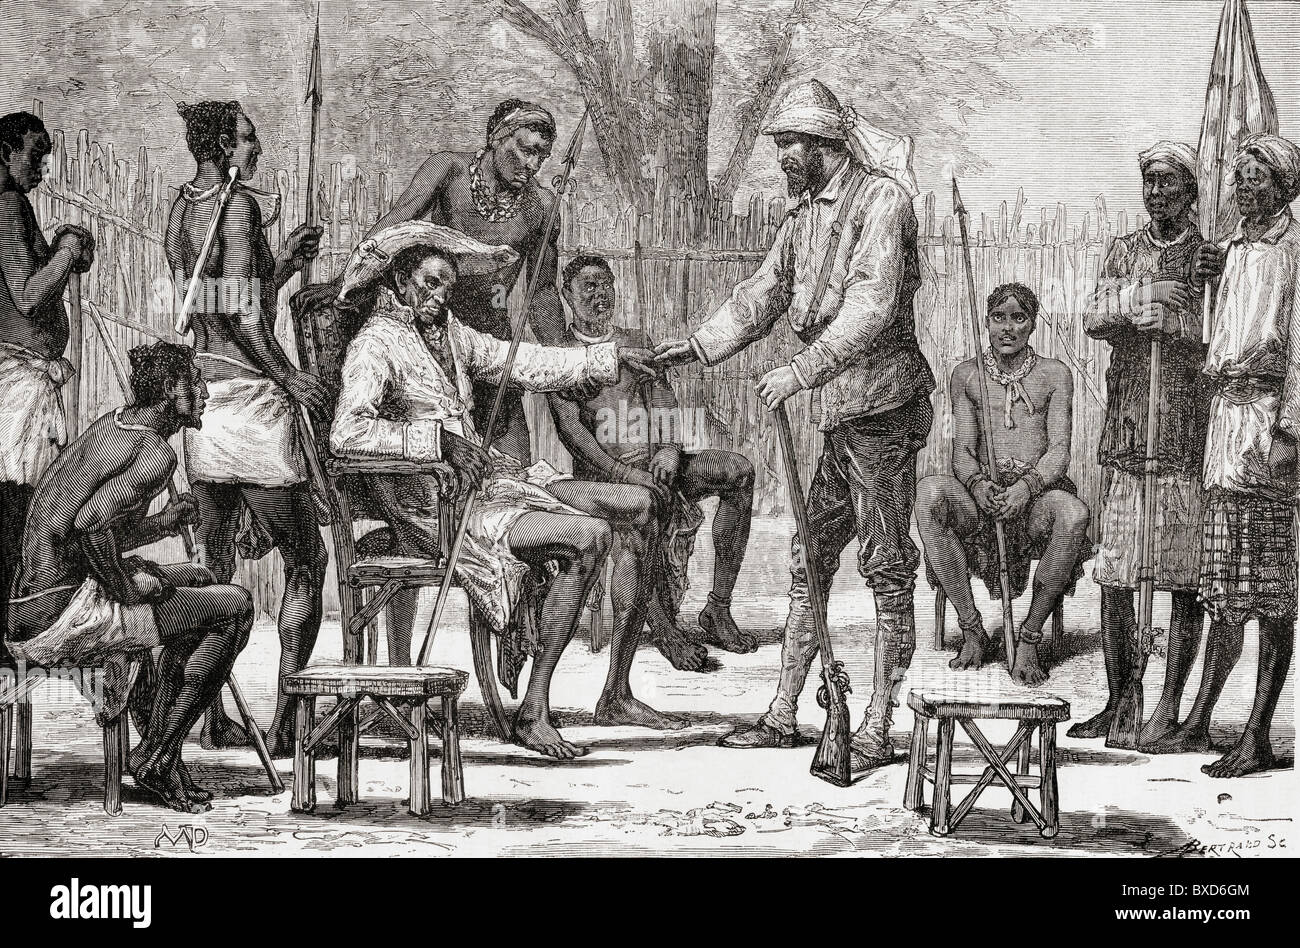 Verney Lovett Cameron visiting king Konngo, during his travels in Africa in 1872 to 1876. - Stock Image